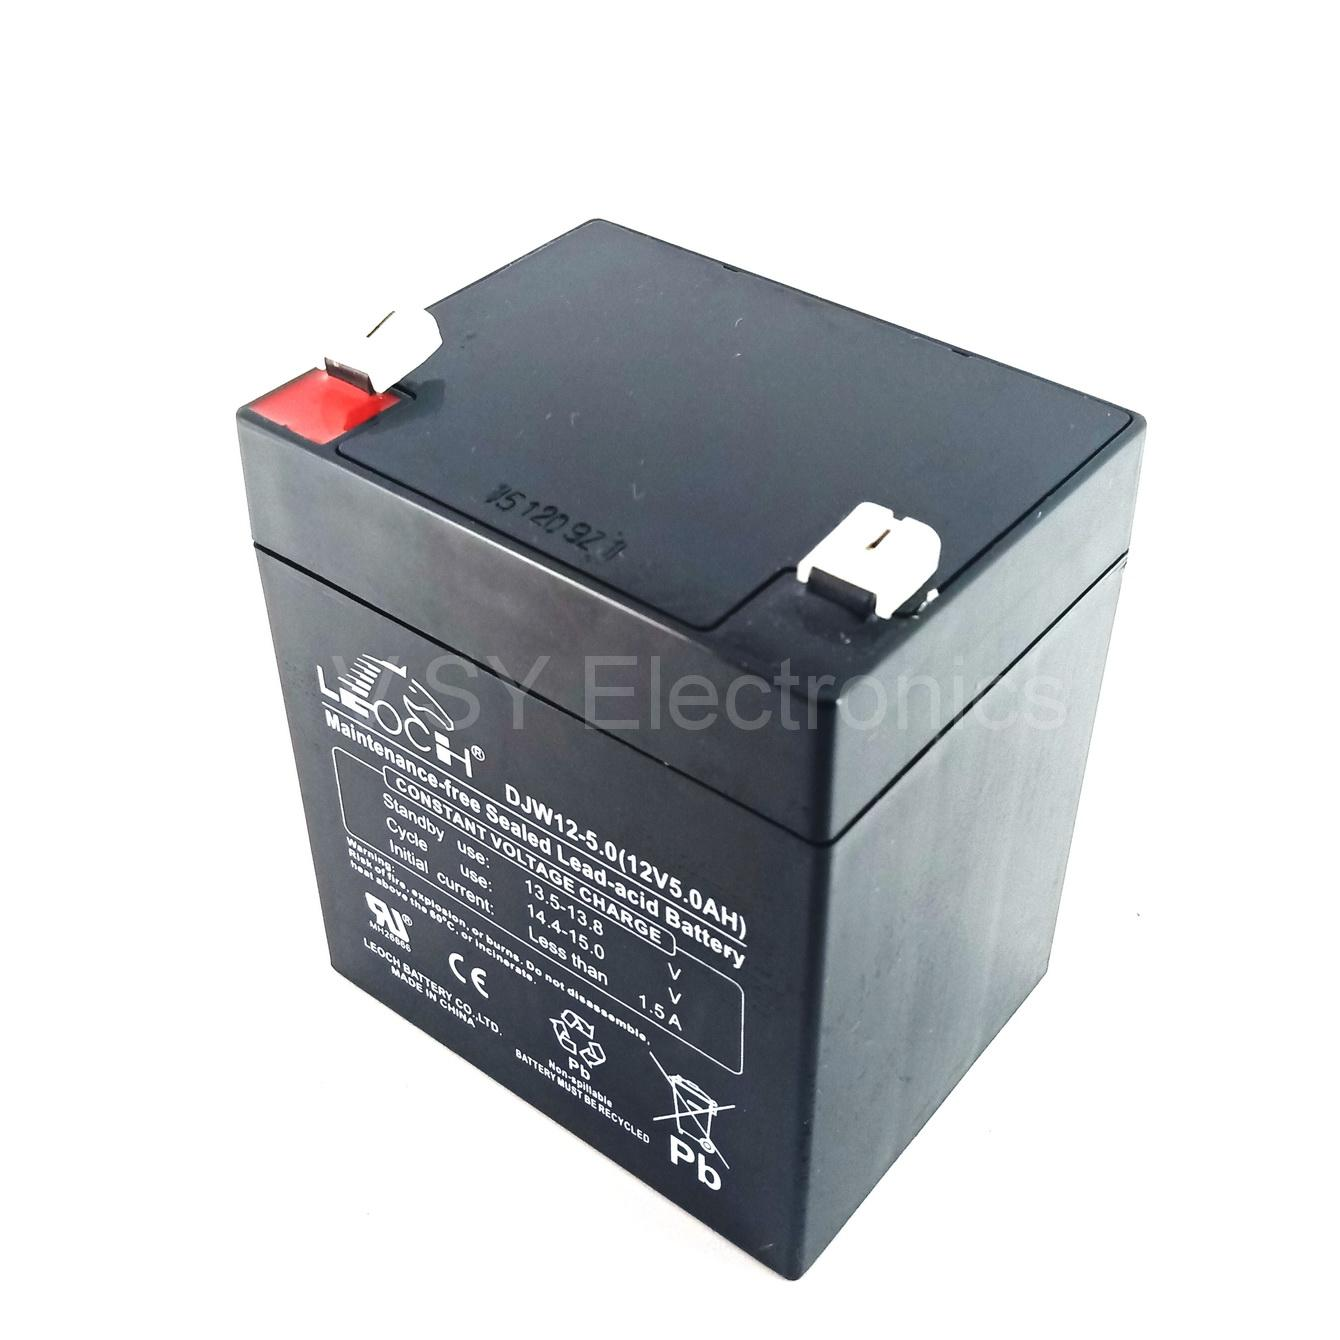 hight resolution of leoch 12v 5ah rechargeable sealed lead acid battery for ups solar emergency lights